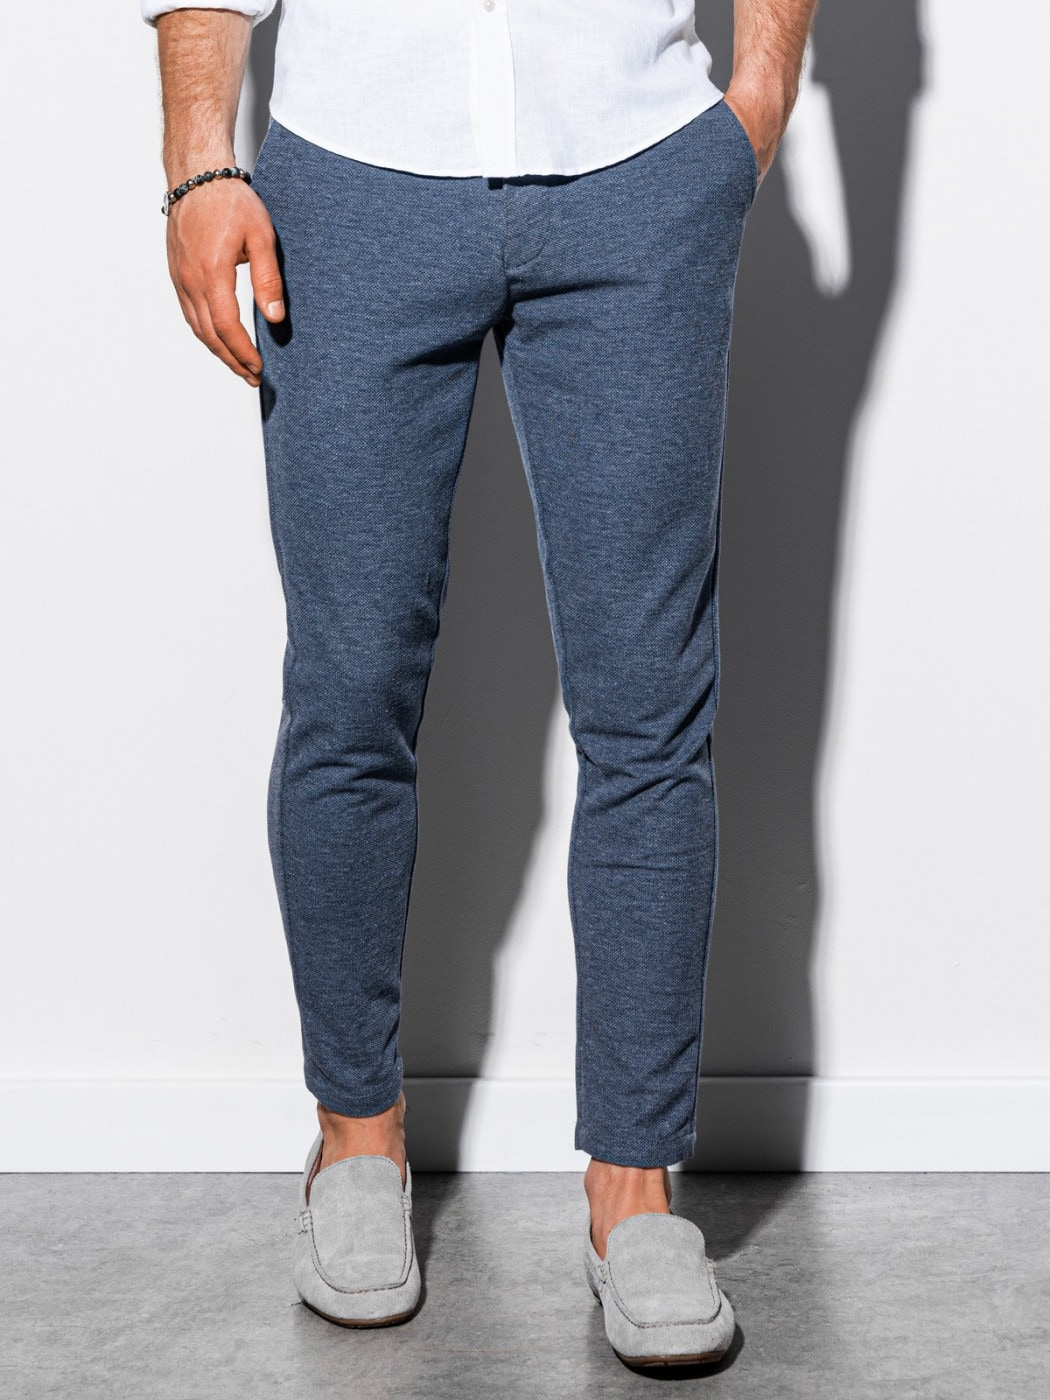 Ombre Clothing Men's pants chinos P891